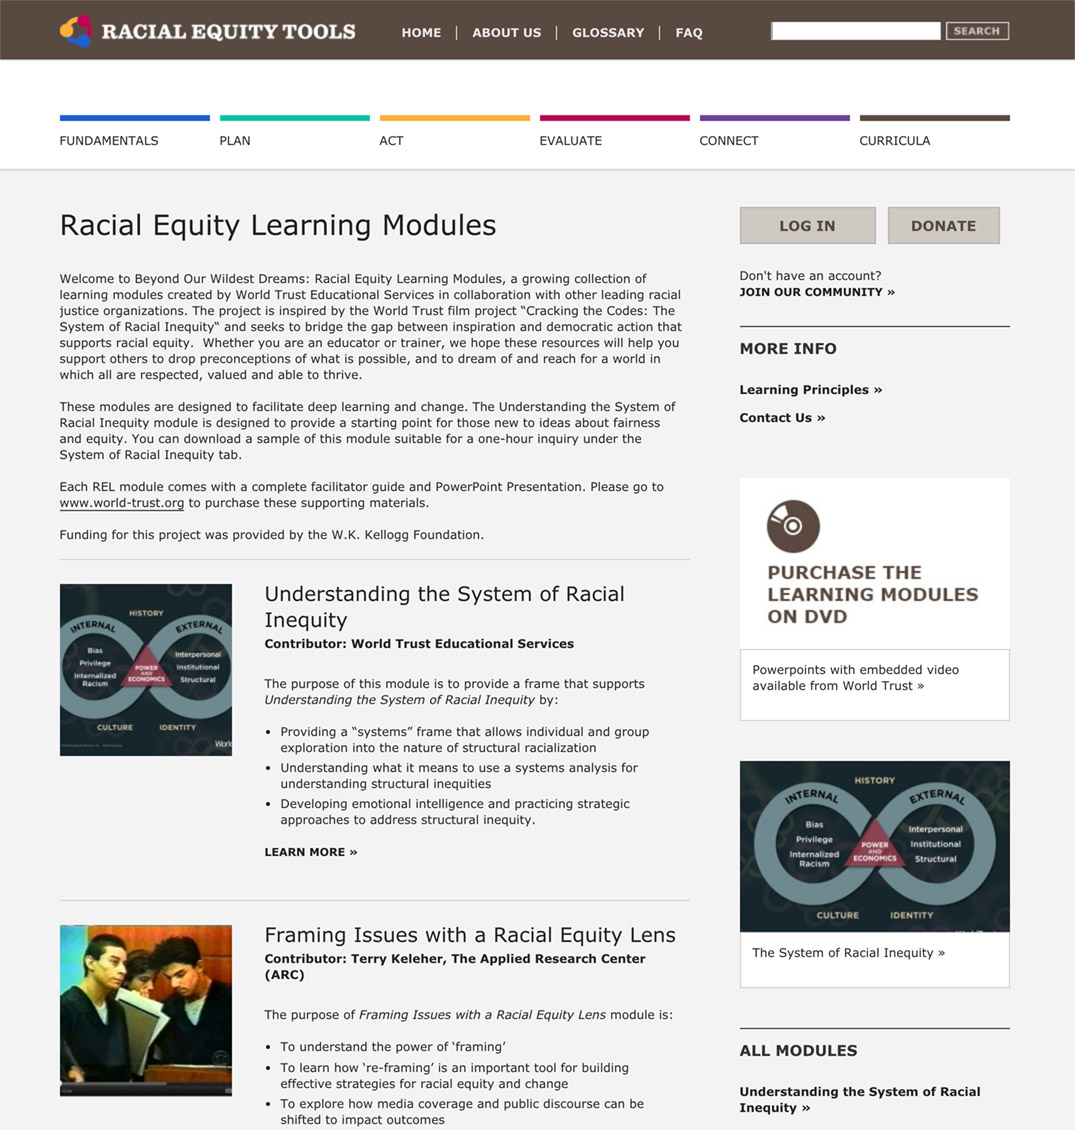 Racial Equity Tools' Racial Equity Learning Modules